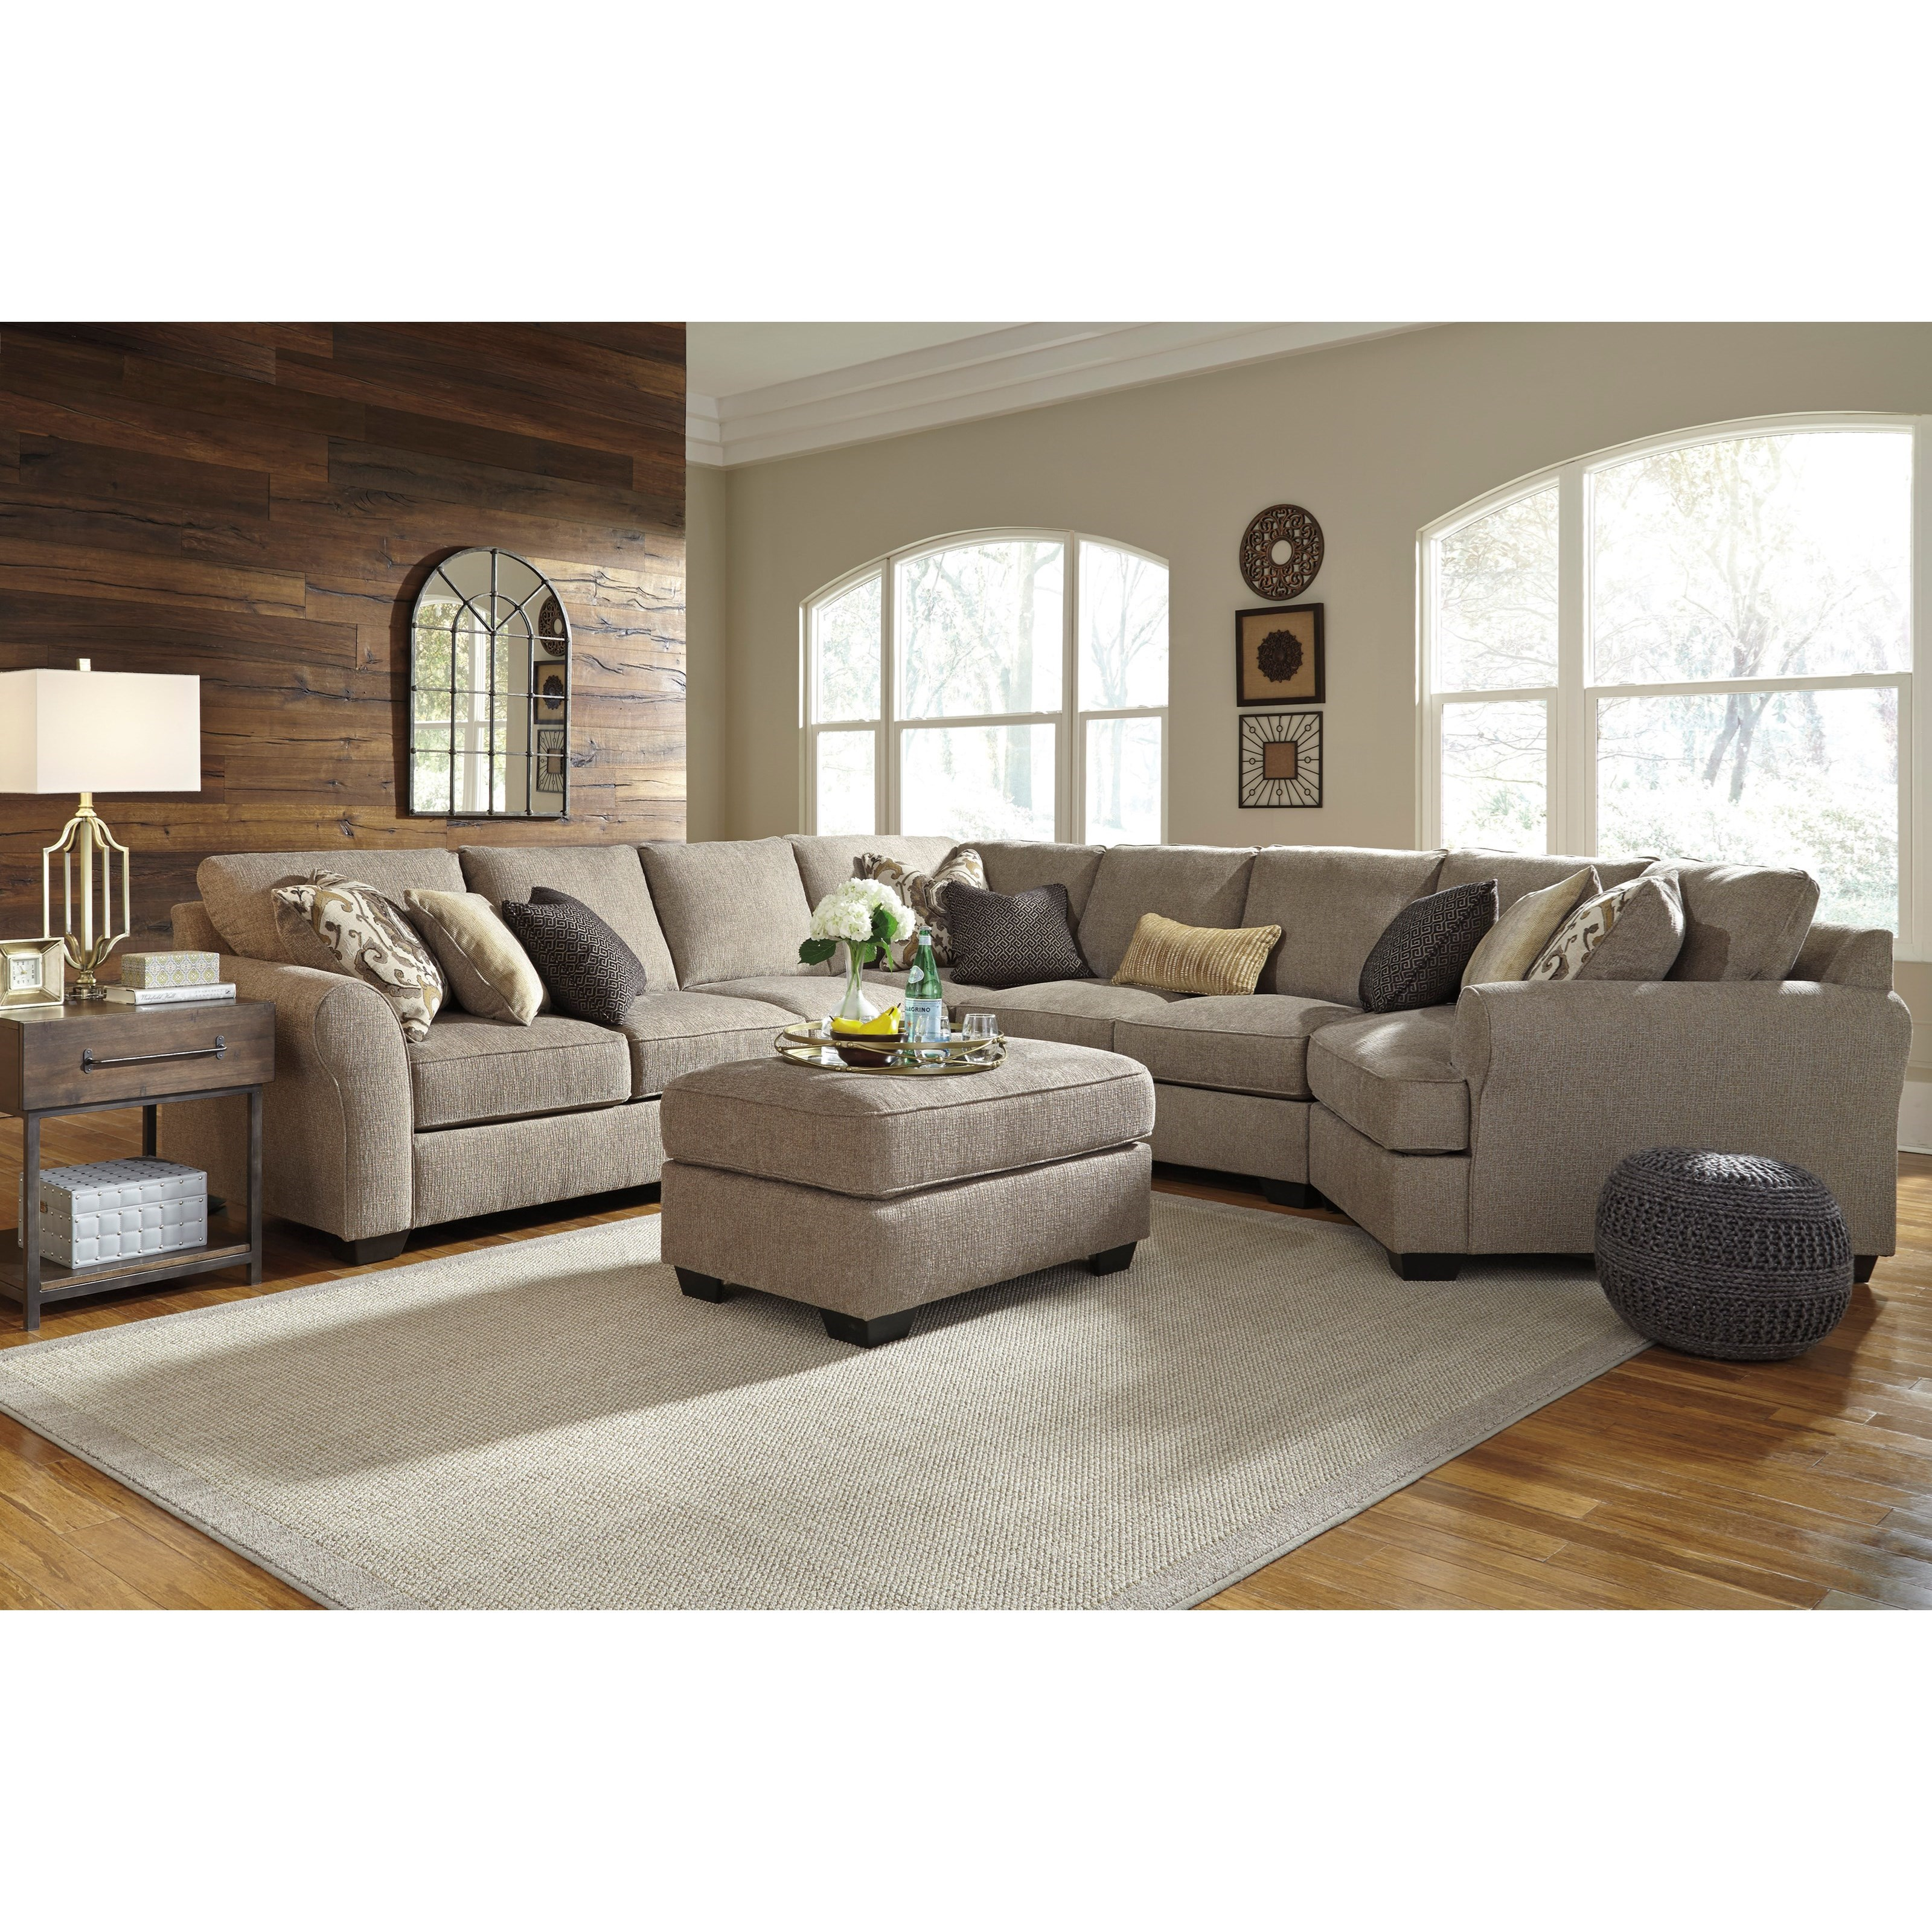 Benchcraft pantomine stationary living room group dunk for Living room furniture groups